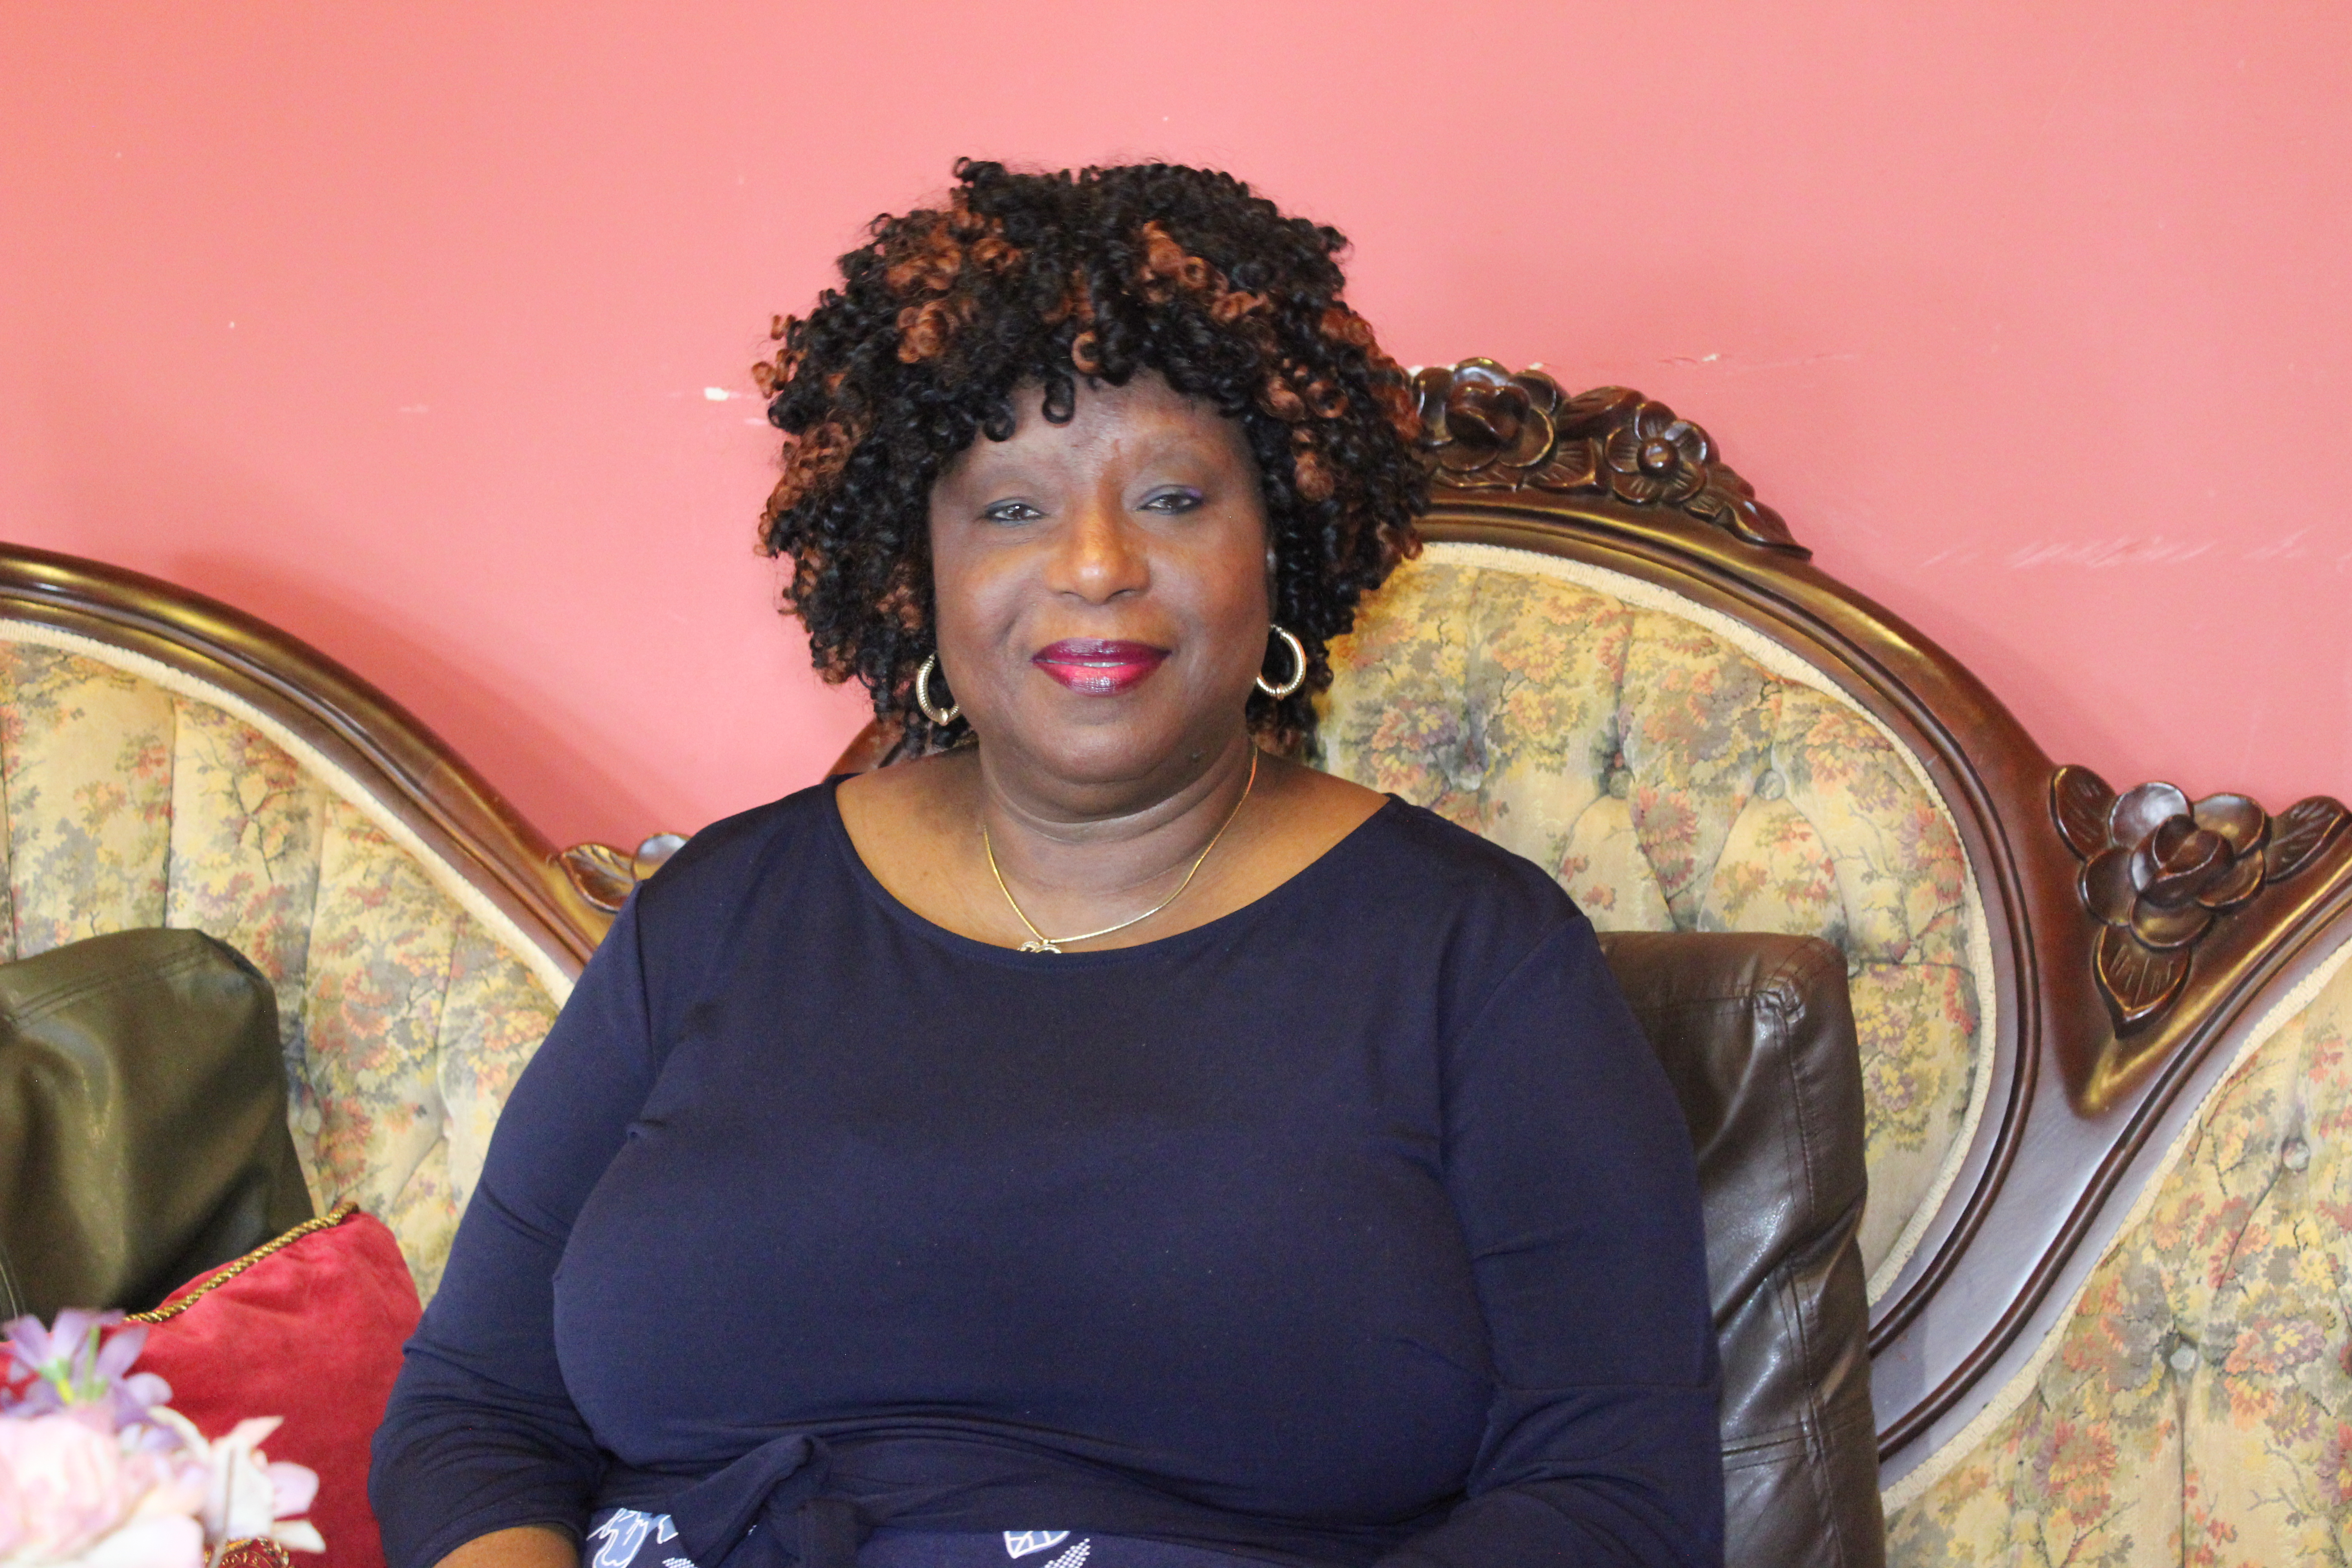 Founder and CEO Susan Dexter says the Victorian Candle Bed & Breakfast is at ease offering American and African cuisine . Photo Ben Bangoura, AlloAfrica News